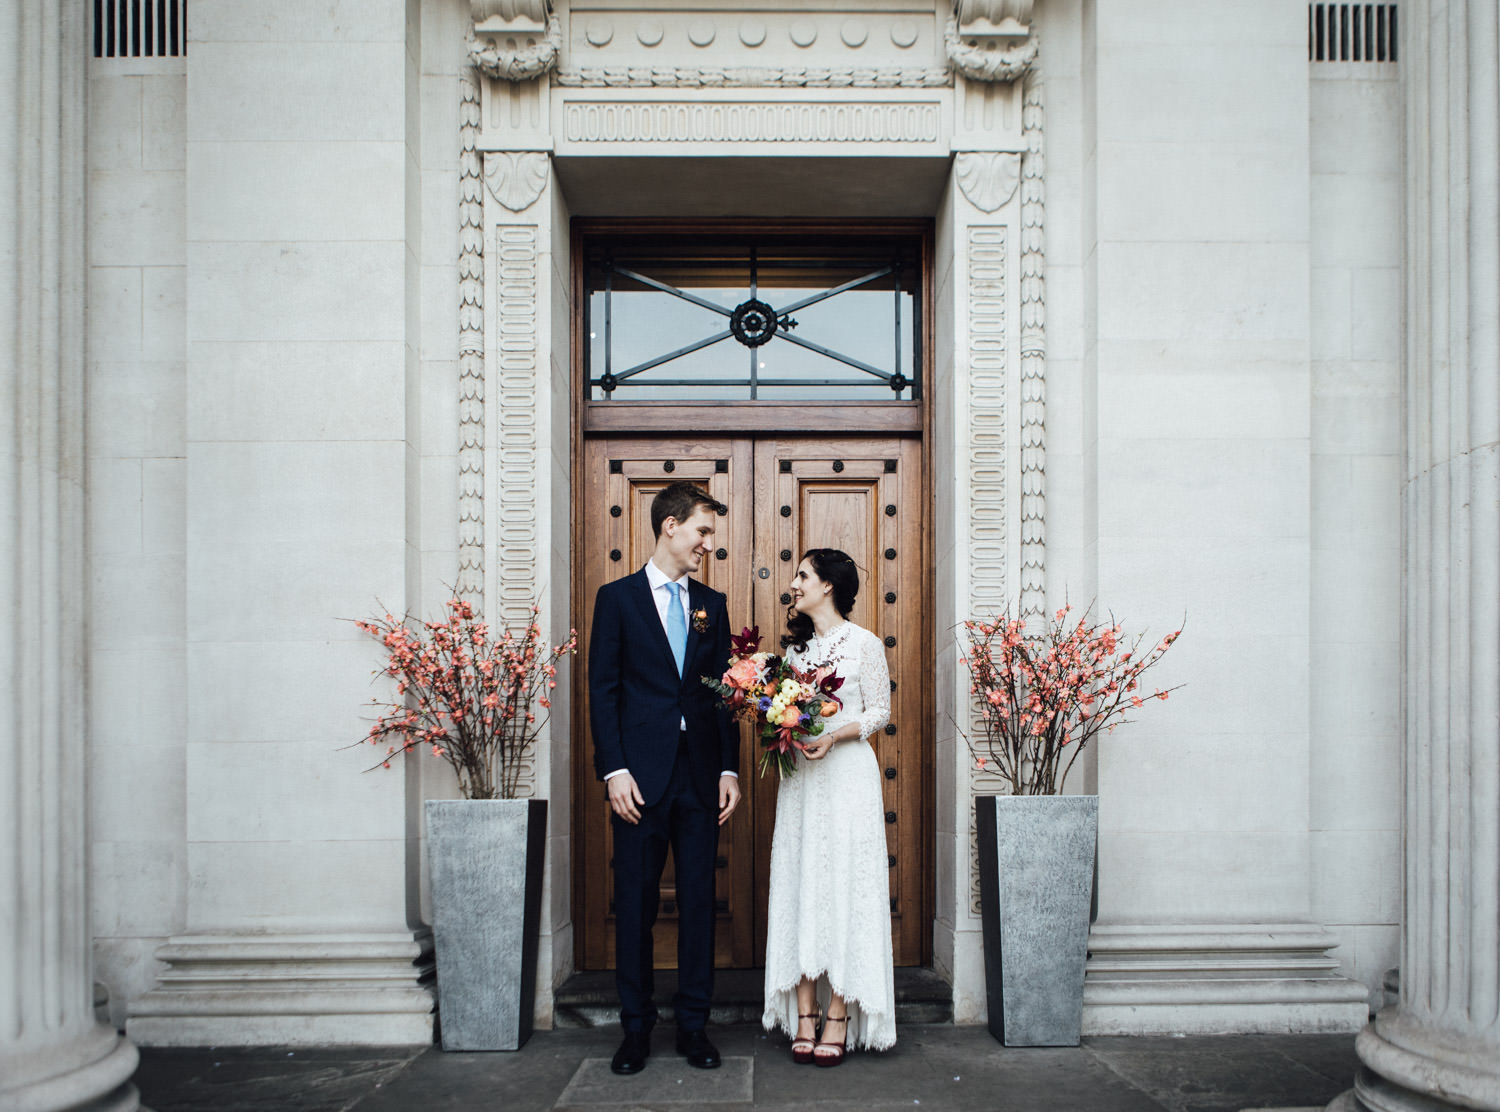 Marylebone elopement photography | London town hall wedding | SP